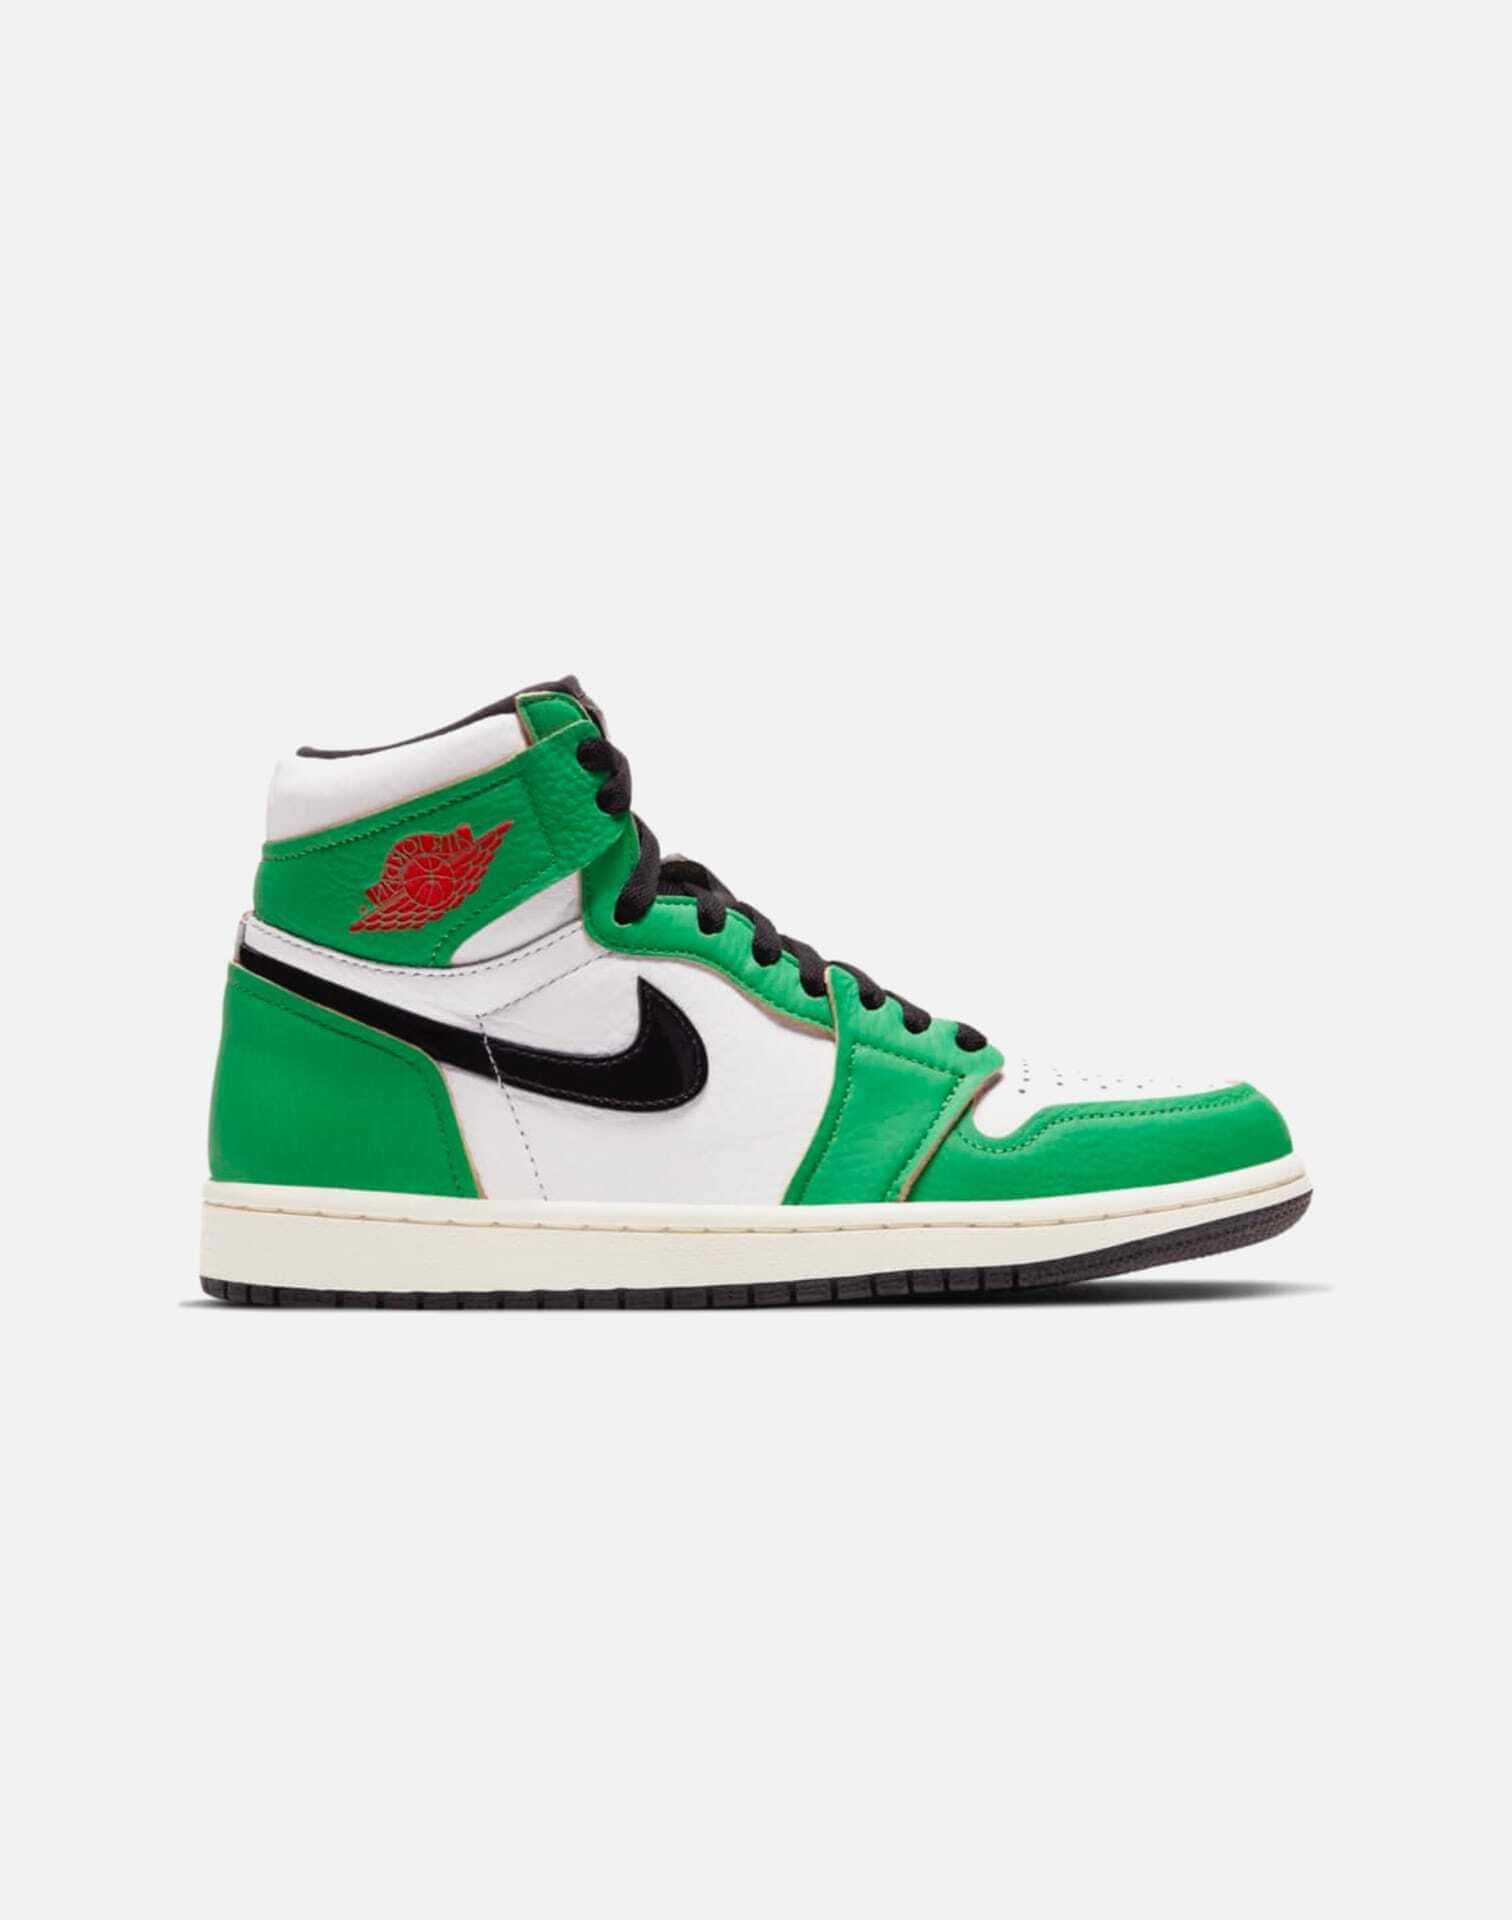 Jordan AIR JORDAN RETRO 1 HIGH 'LUCKY GREEN'